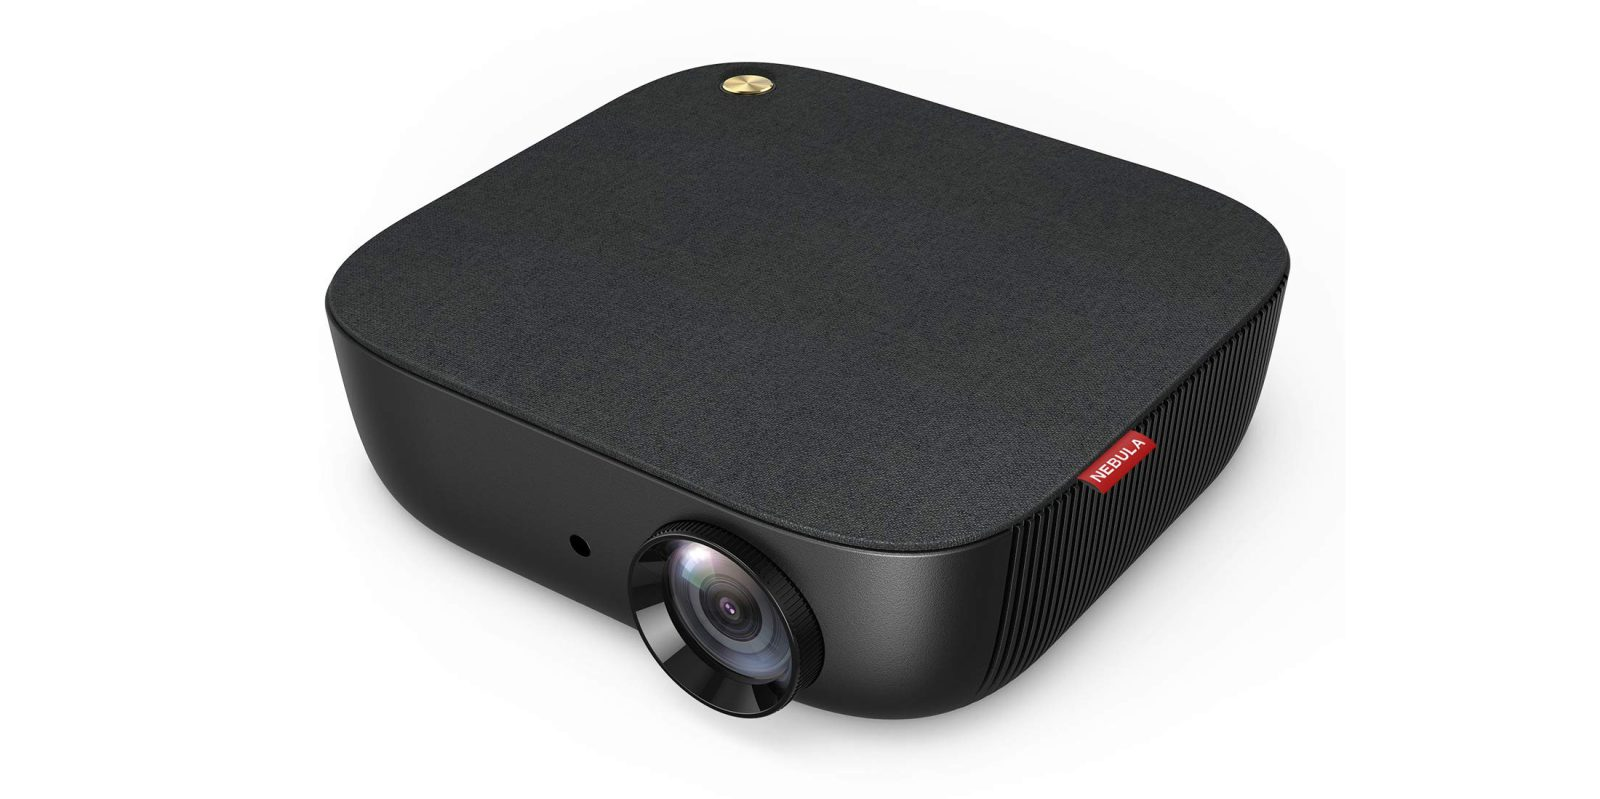 Add Anker's Nebula Prizm II 1080p Projector to your home theater for $160